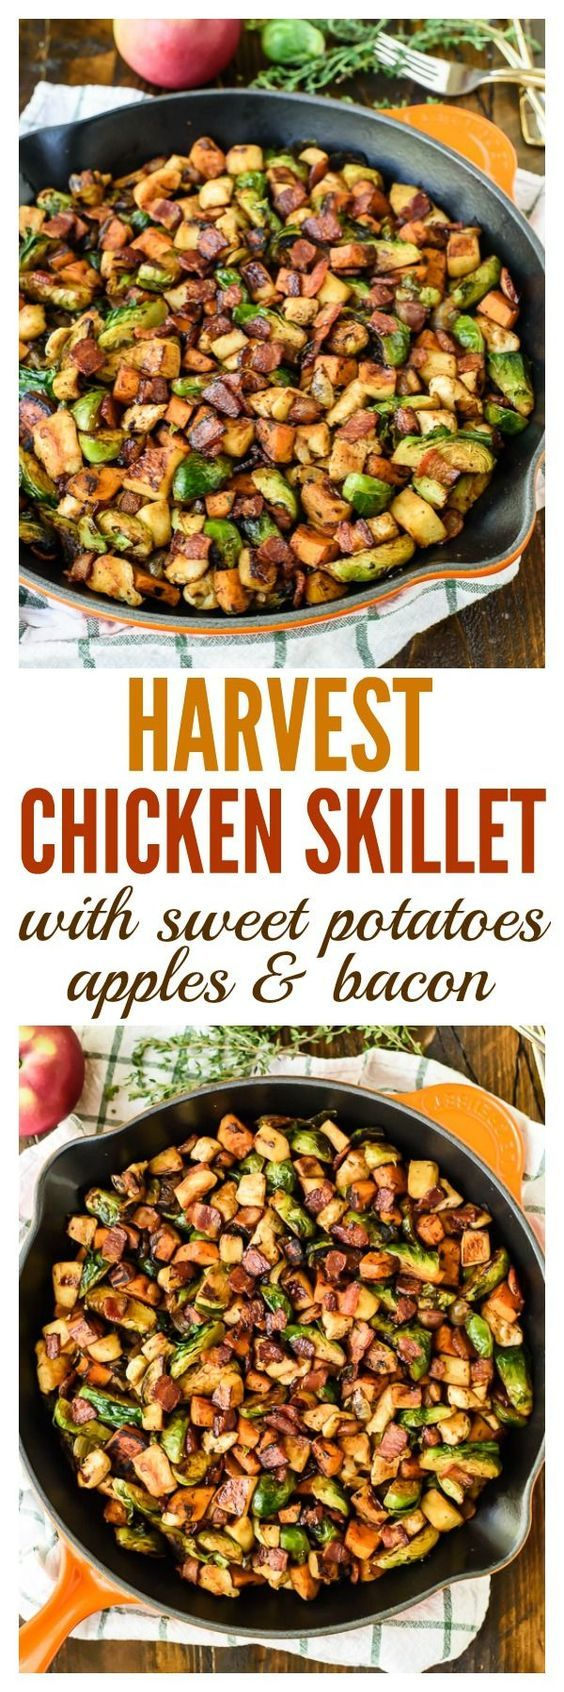 Harvest Chicken Skillet with Sweet Potatoes, Apples, Brussels Sprouts and Bacon. An easy, healthy one pan dinner! paleo, whole 30 Well Plated